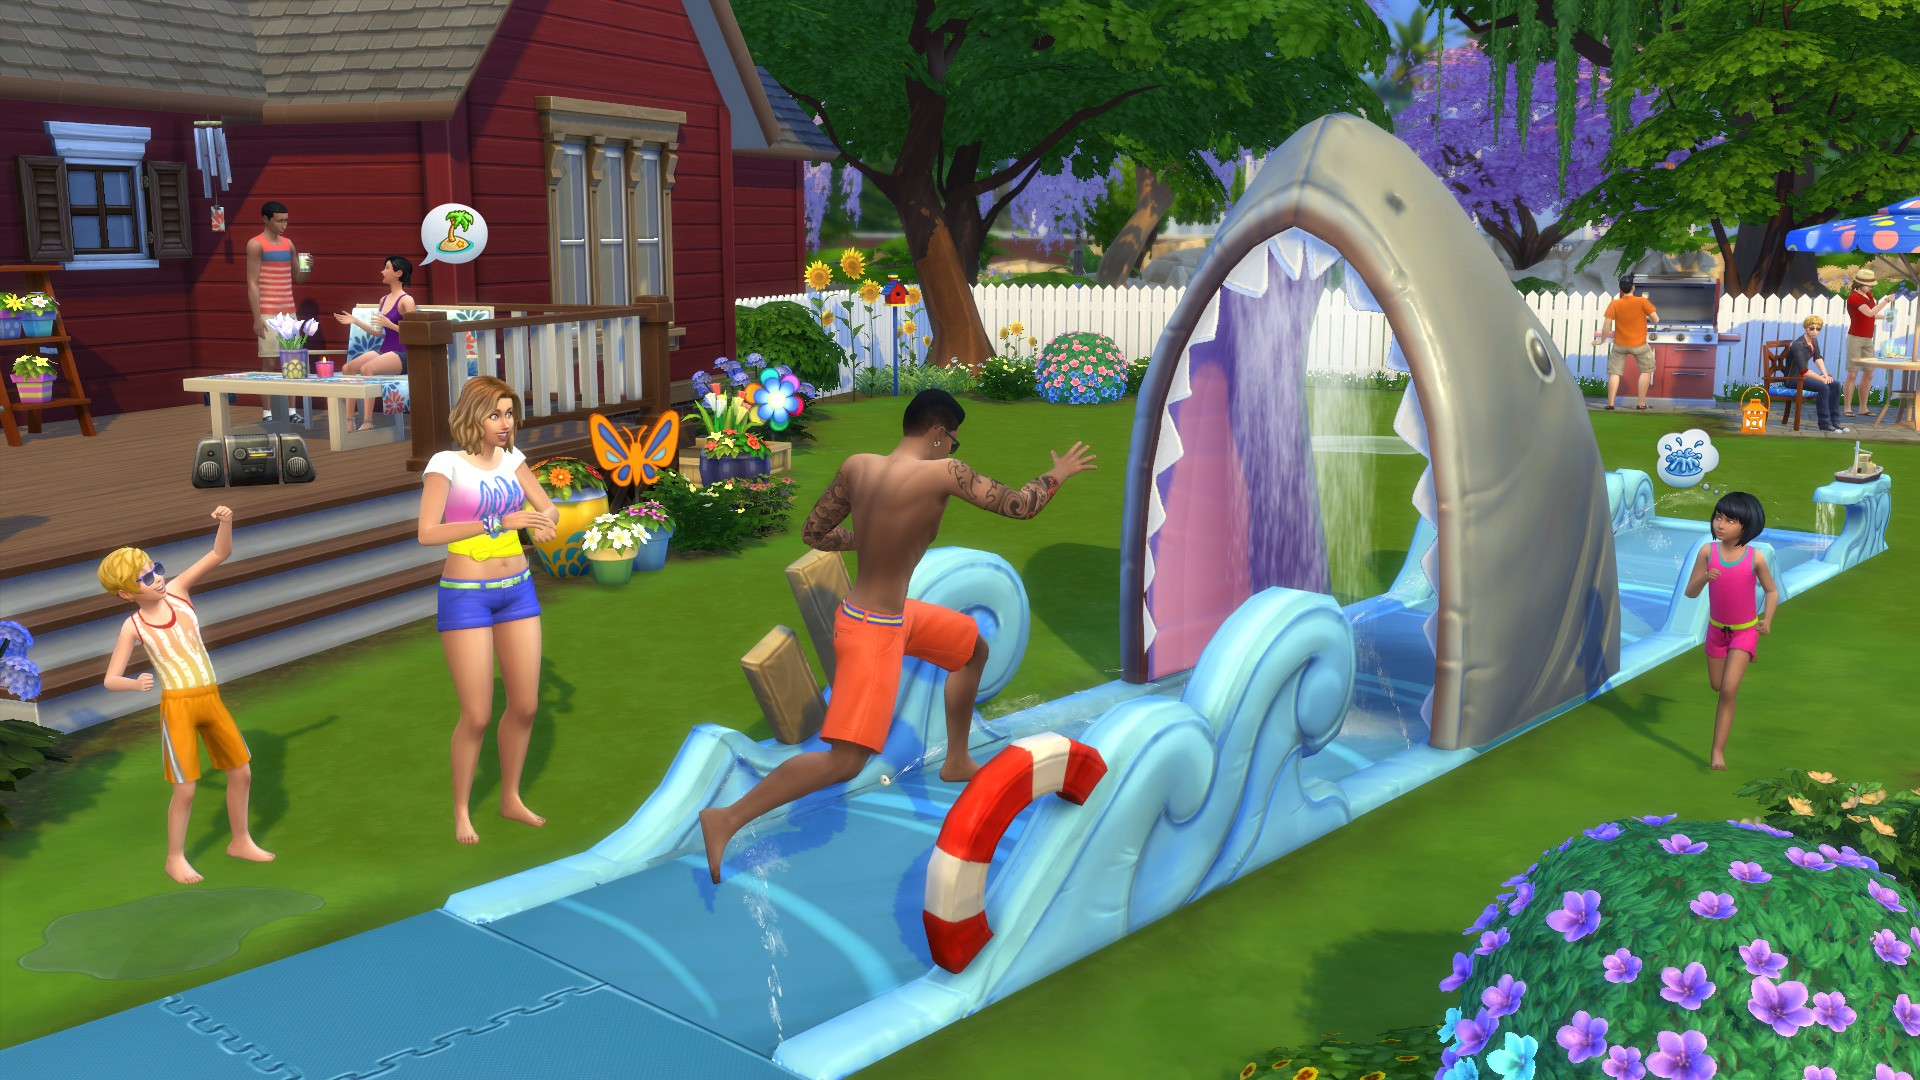 A Beginners Guide To The Sims 4 On Consoles